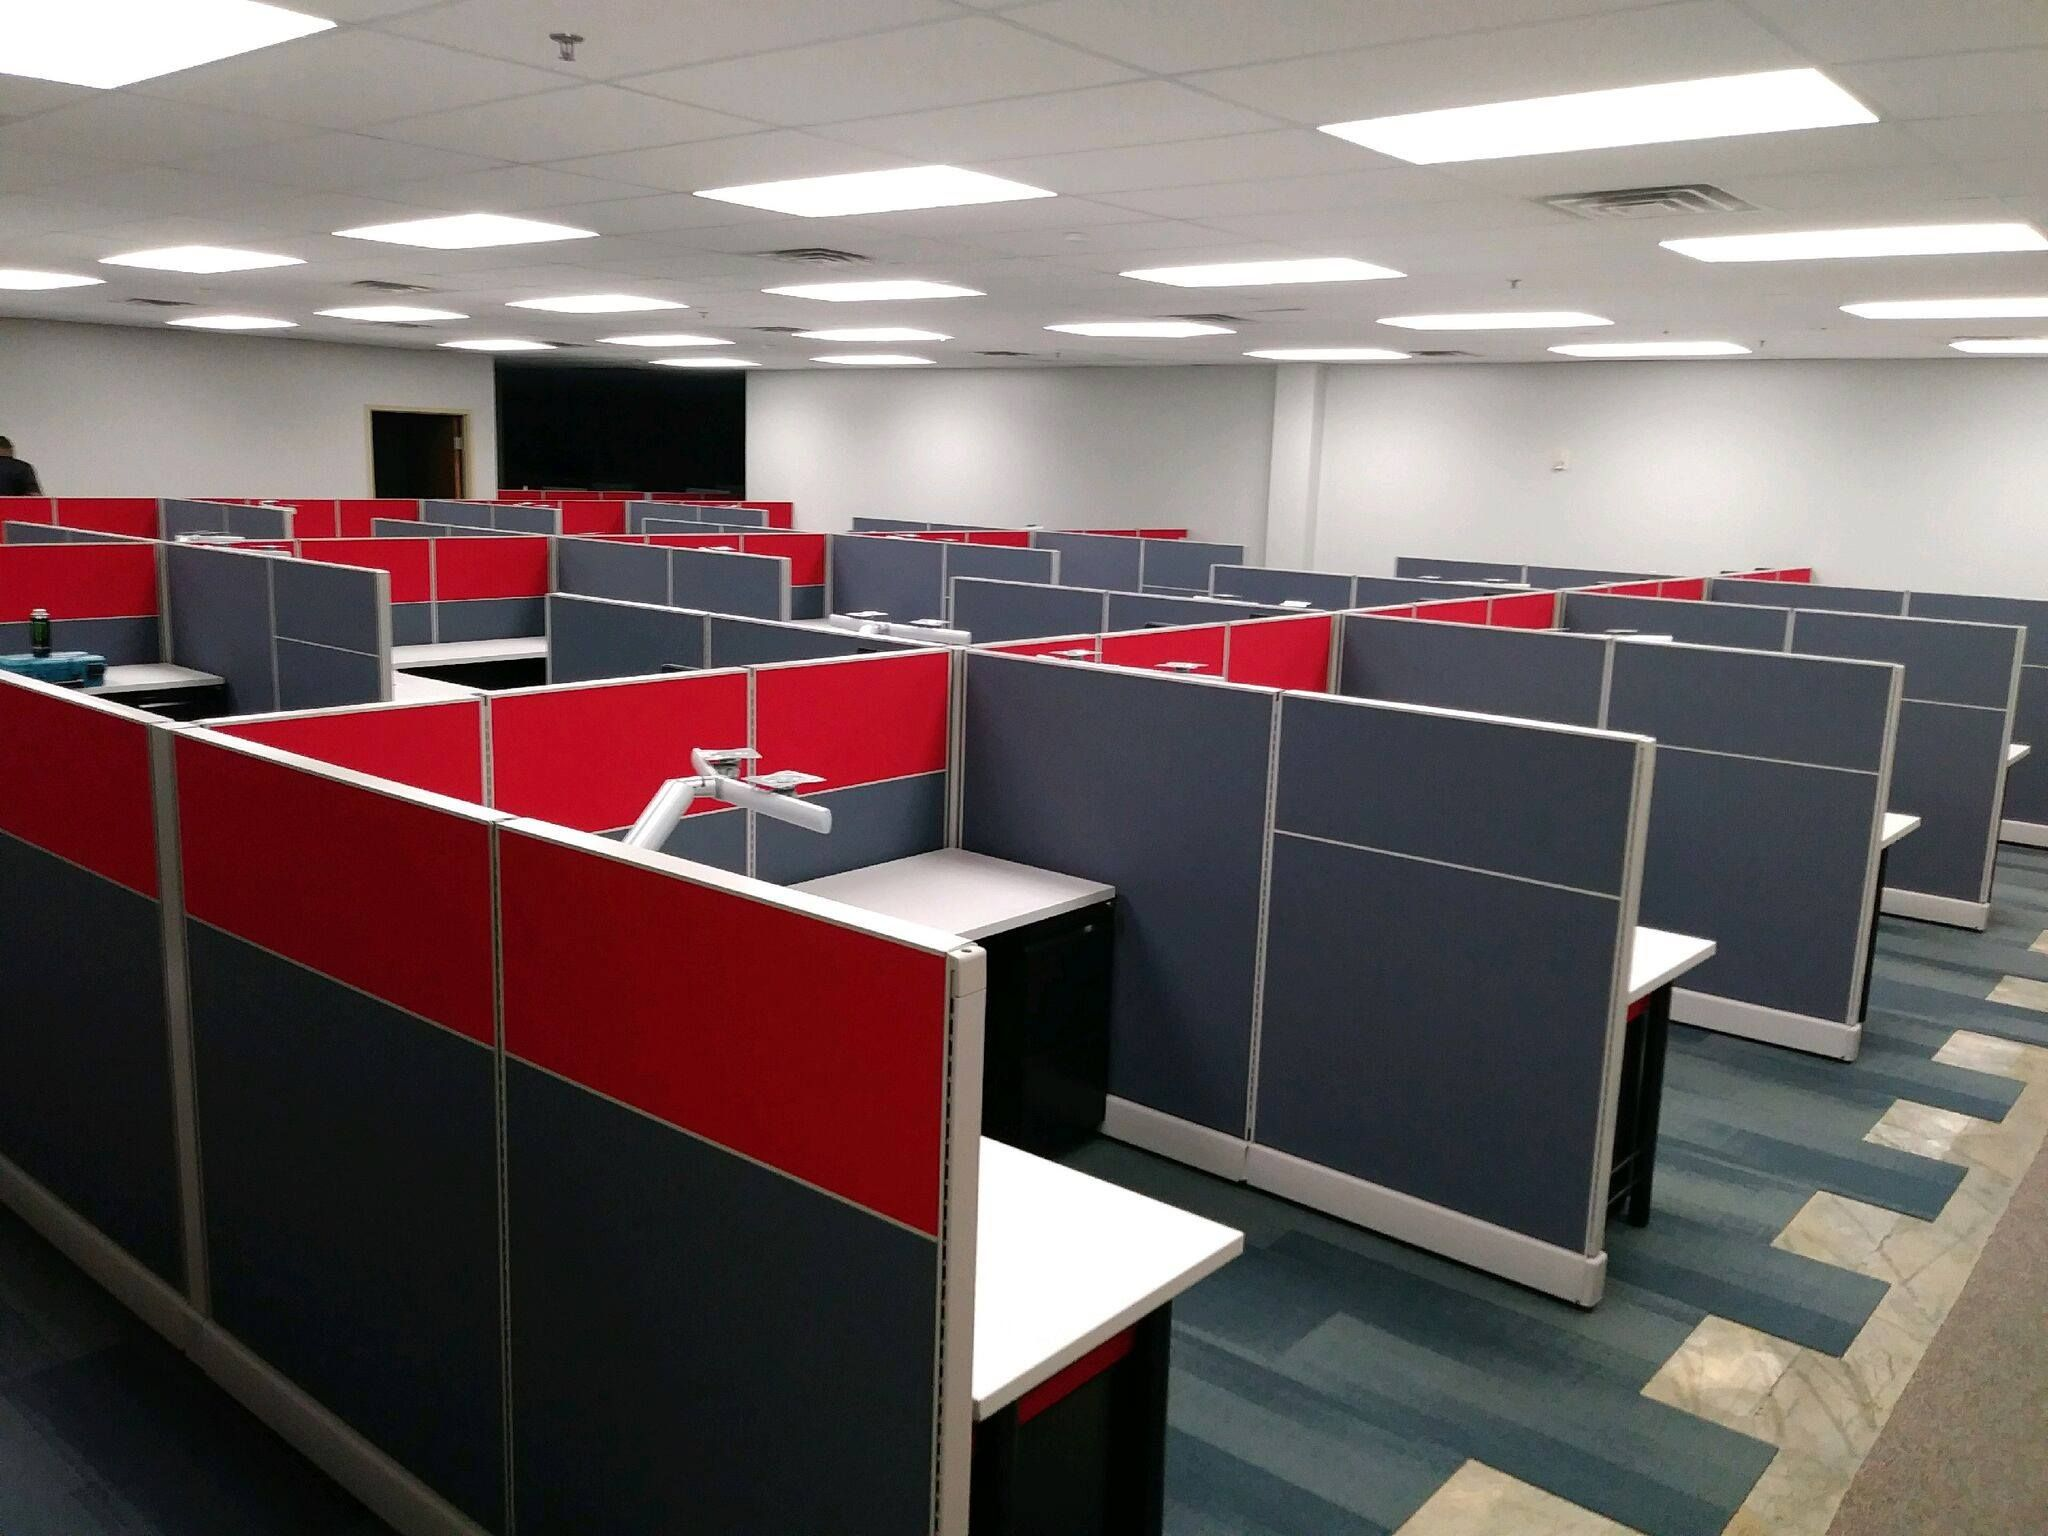 From new office furniture purchases and office workstation redesigns